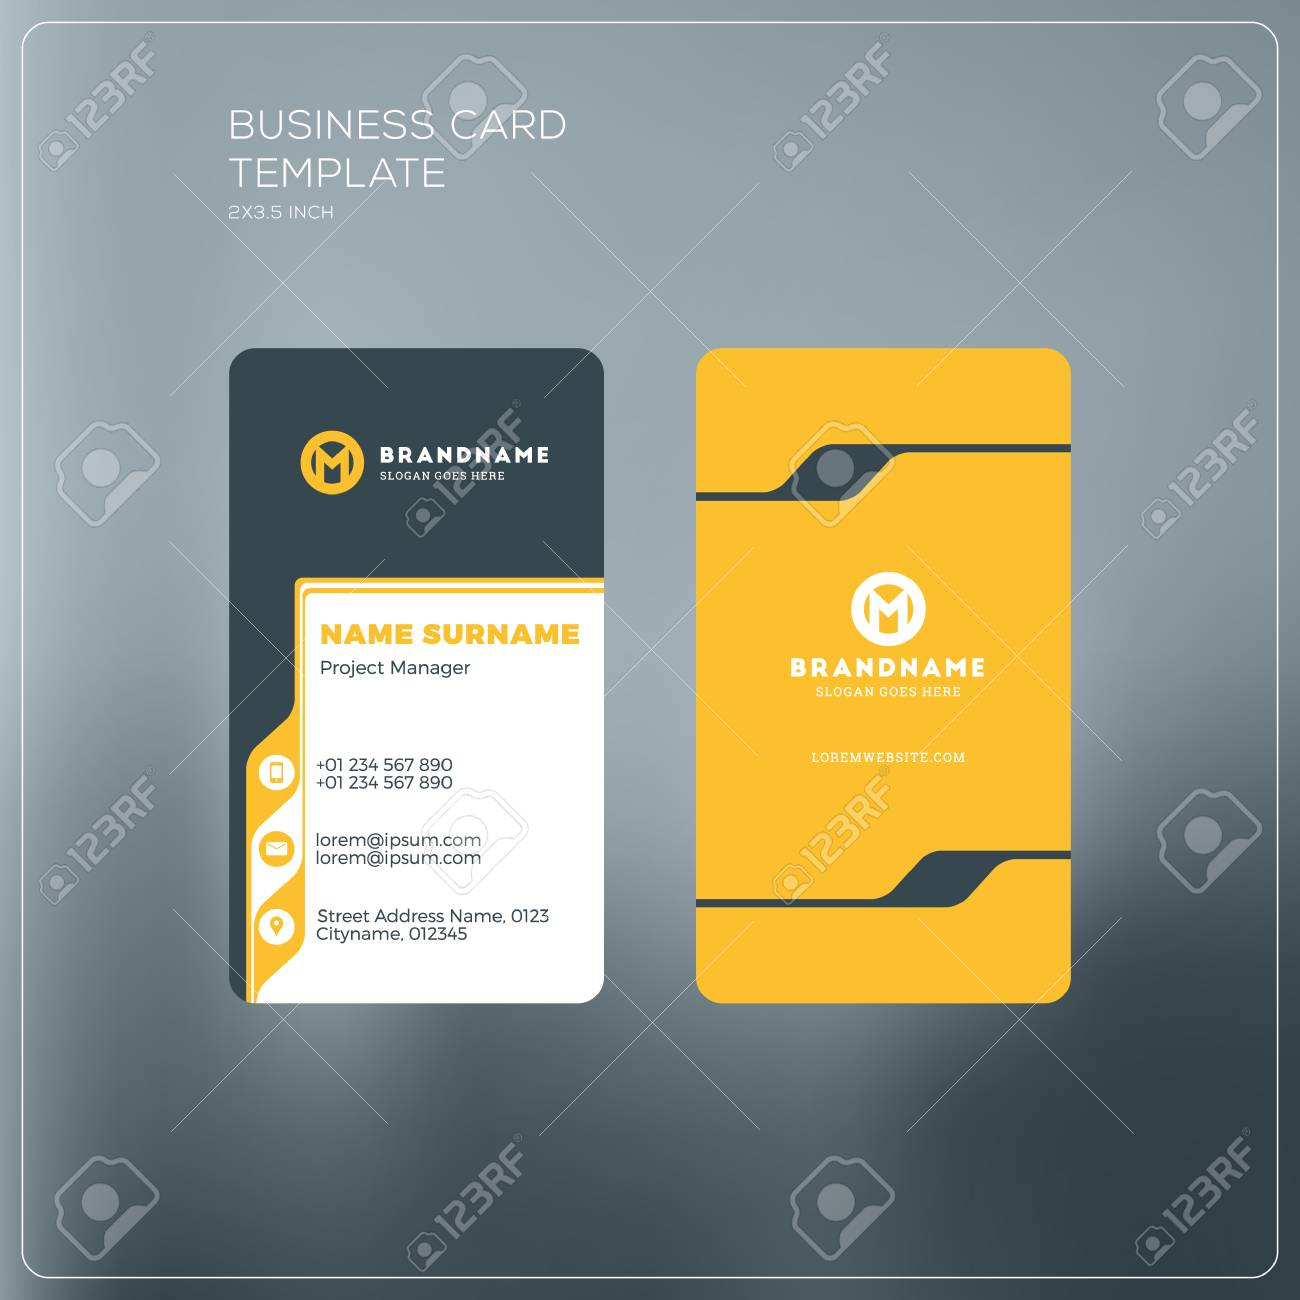 Vertical business card print template personal business card vector vertical business card print template personal business card with company logo black and yellow colors clean flat design vector illustration reheart Images